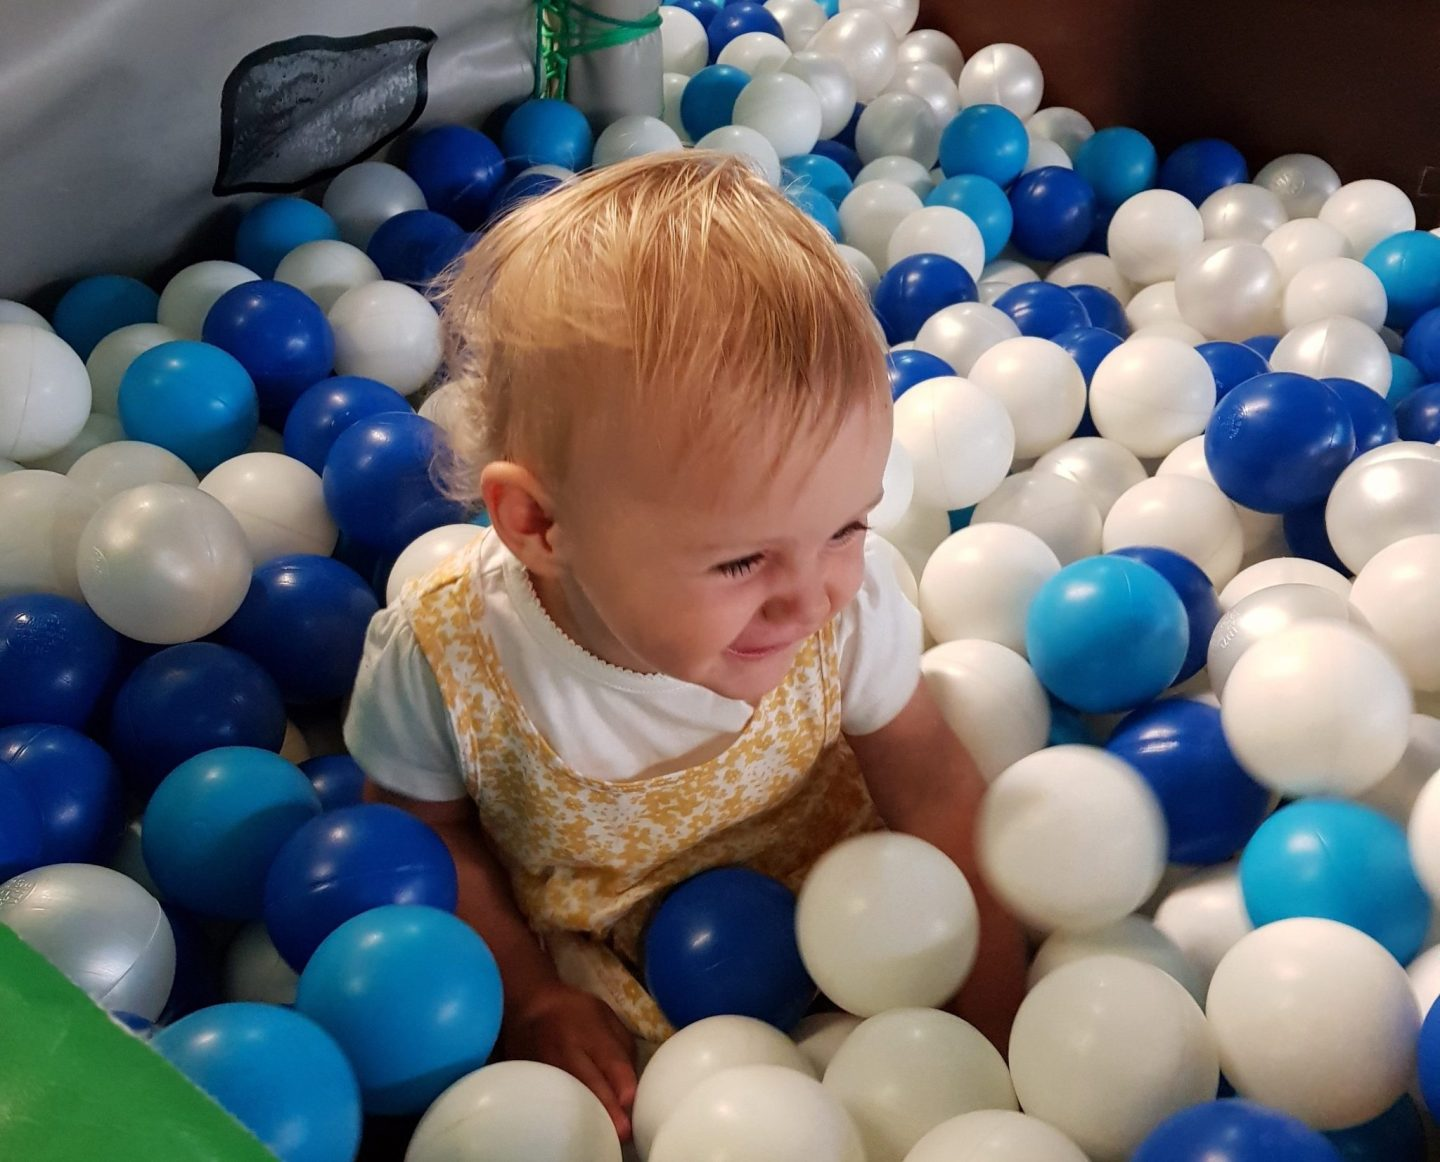 Ettie in ball pit with blue and white balls